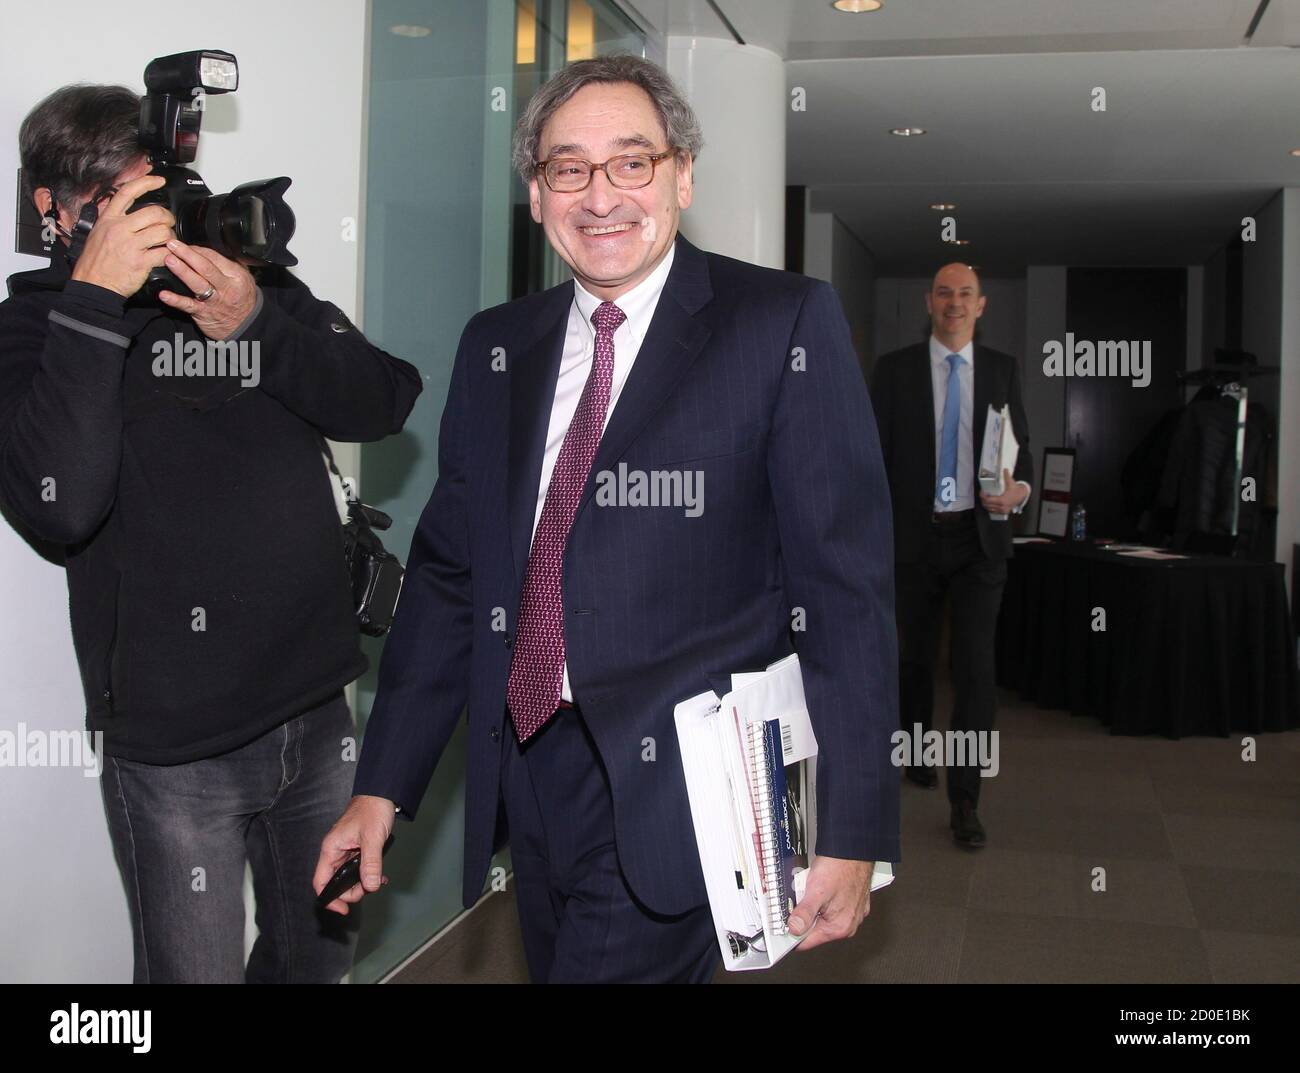 Michael Sabia, president and chief executive officer of Caisse de depot et placement du Quebec (CDP) walks to a press briefing for the release of their 2013 financial results in Montreal, February 26, 2014. REUTERS/Christinne Muschi (CANADA - Tags: BUSINESS) Stock Photo